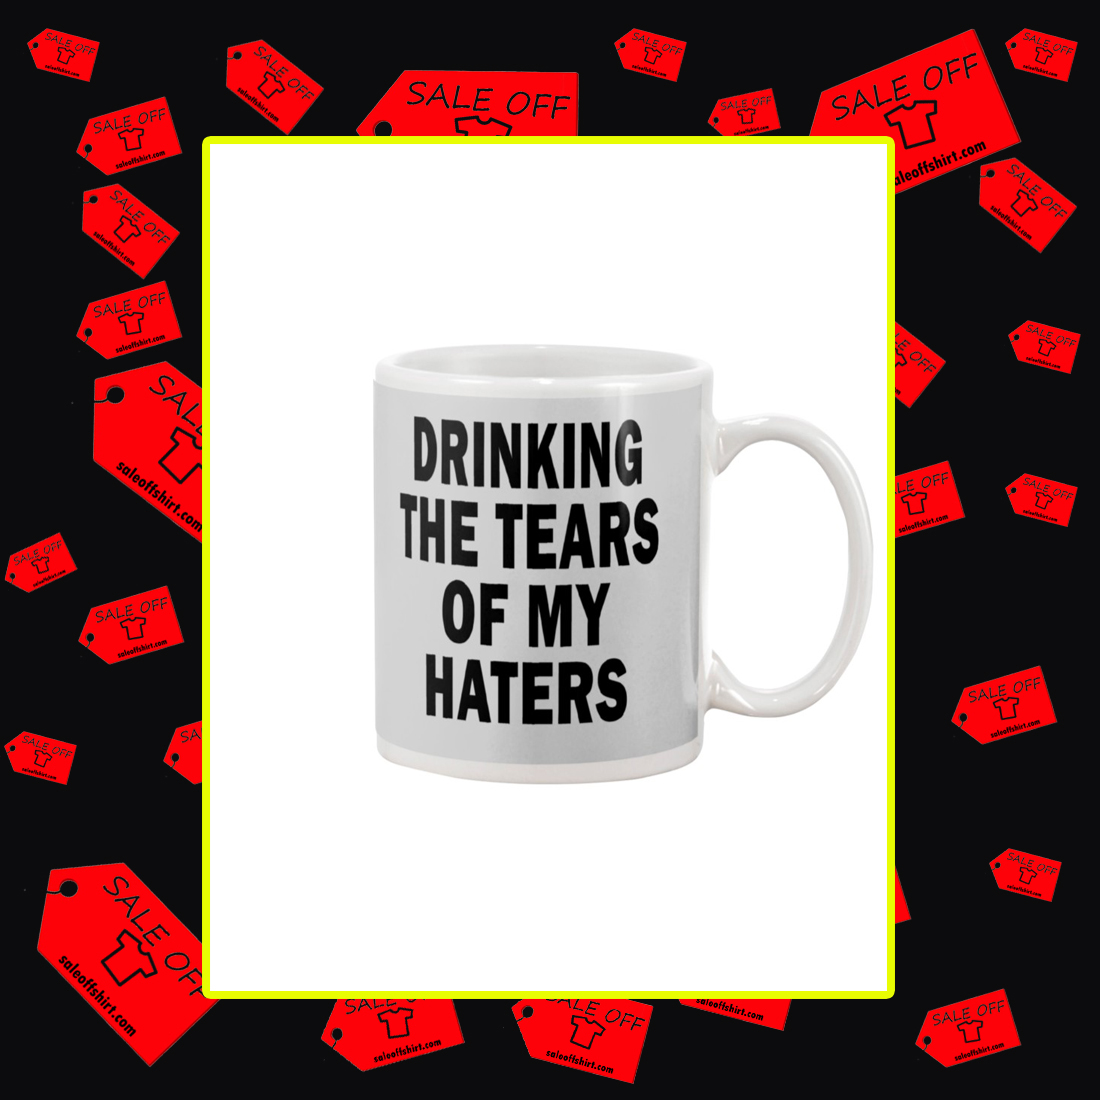 Drinking the tears of my haters mug - ash